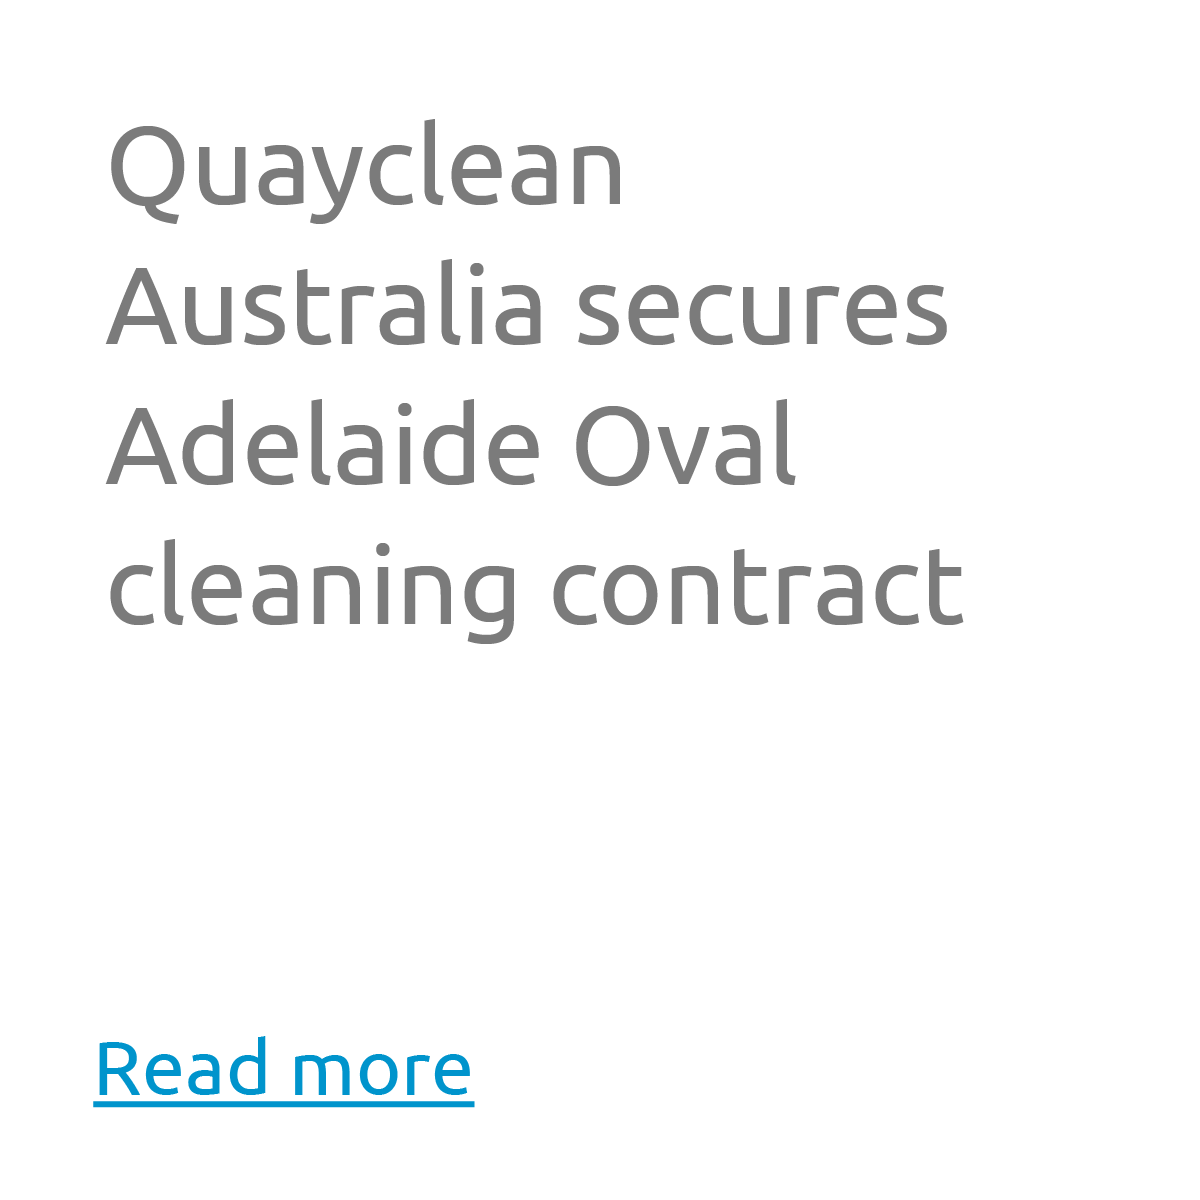 Quayclean Australia secures Adelaide Oval cleaning contract